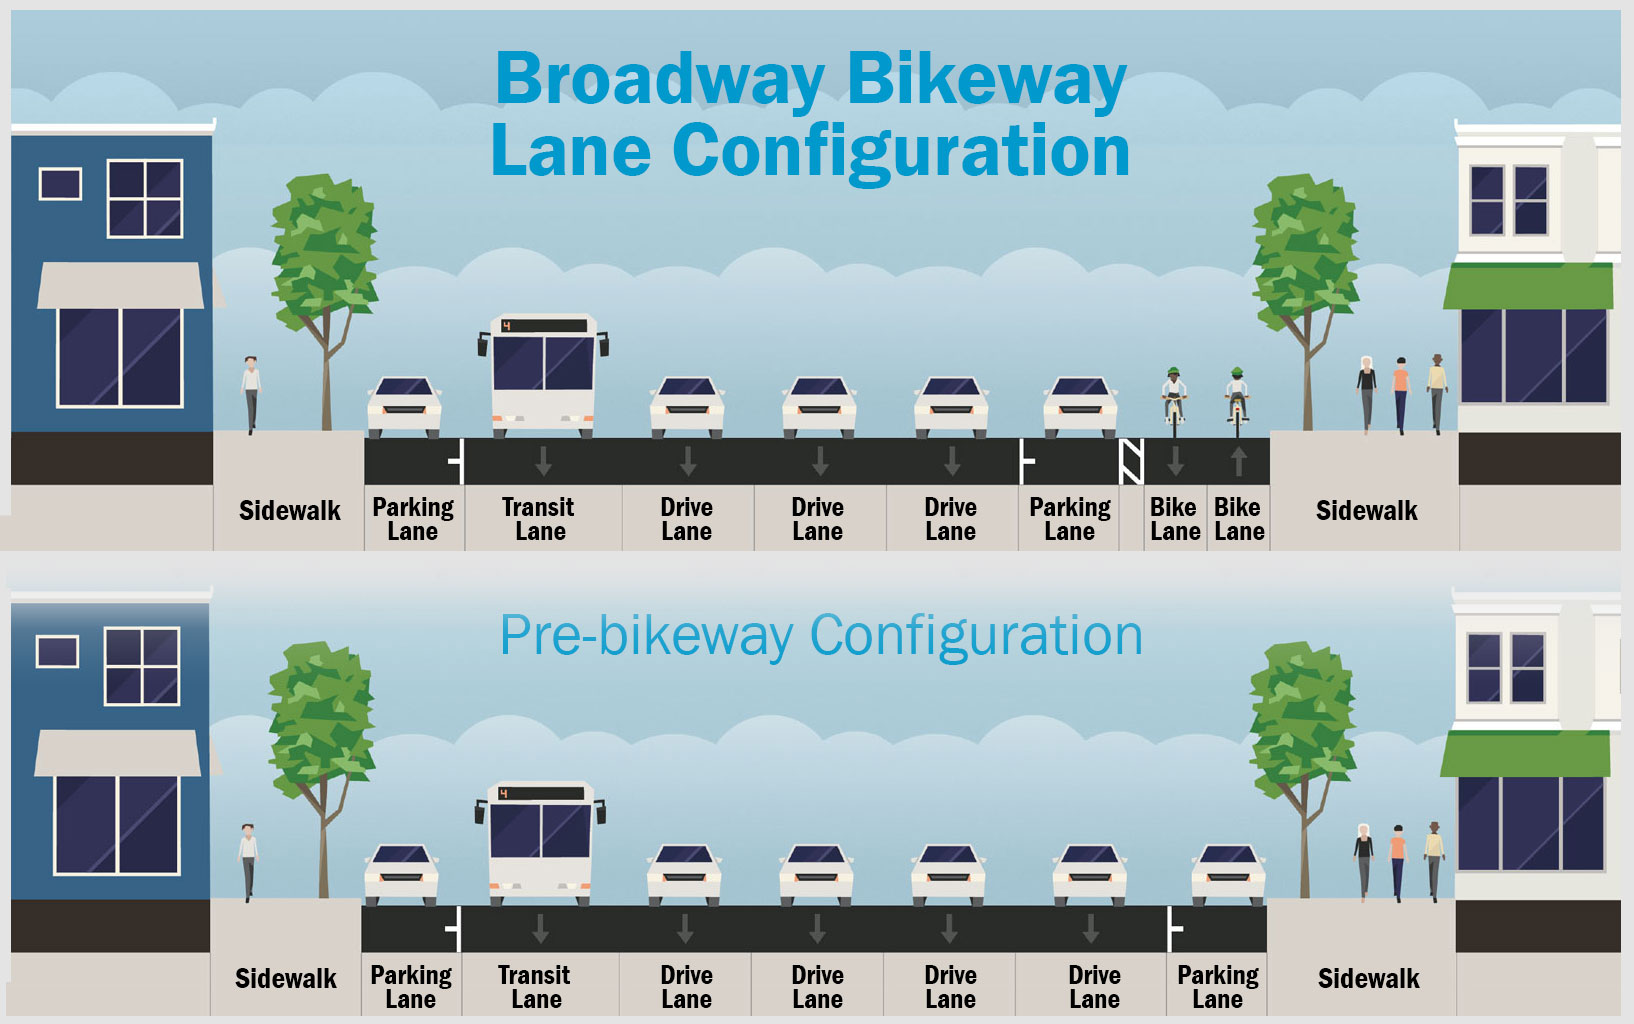 diagram illustrating travel configuration before and after bikeway installation